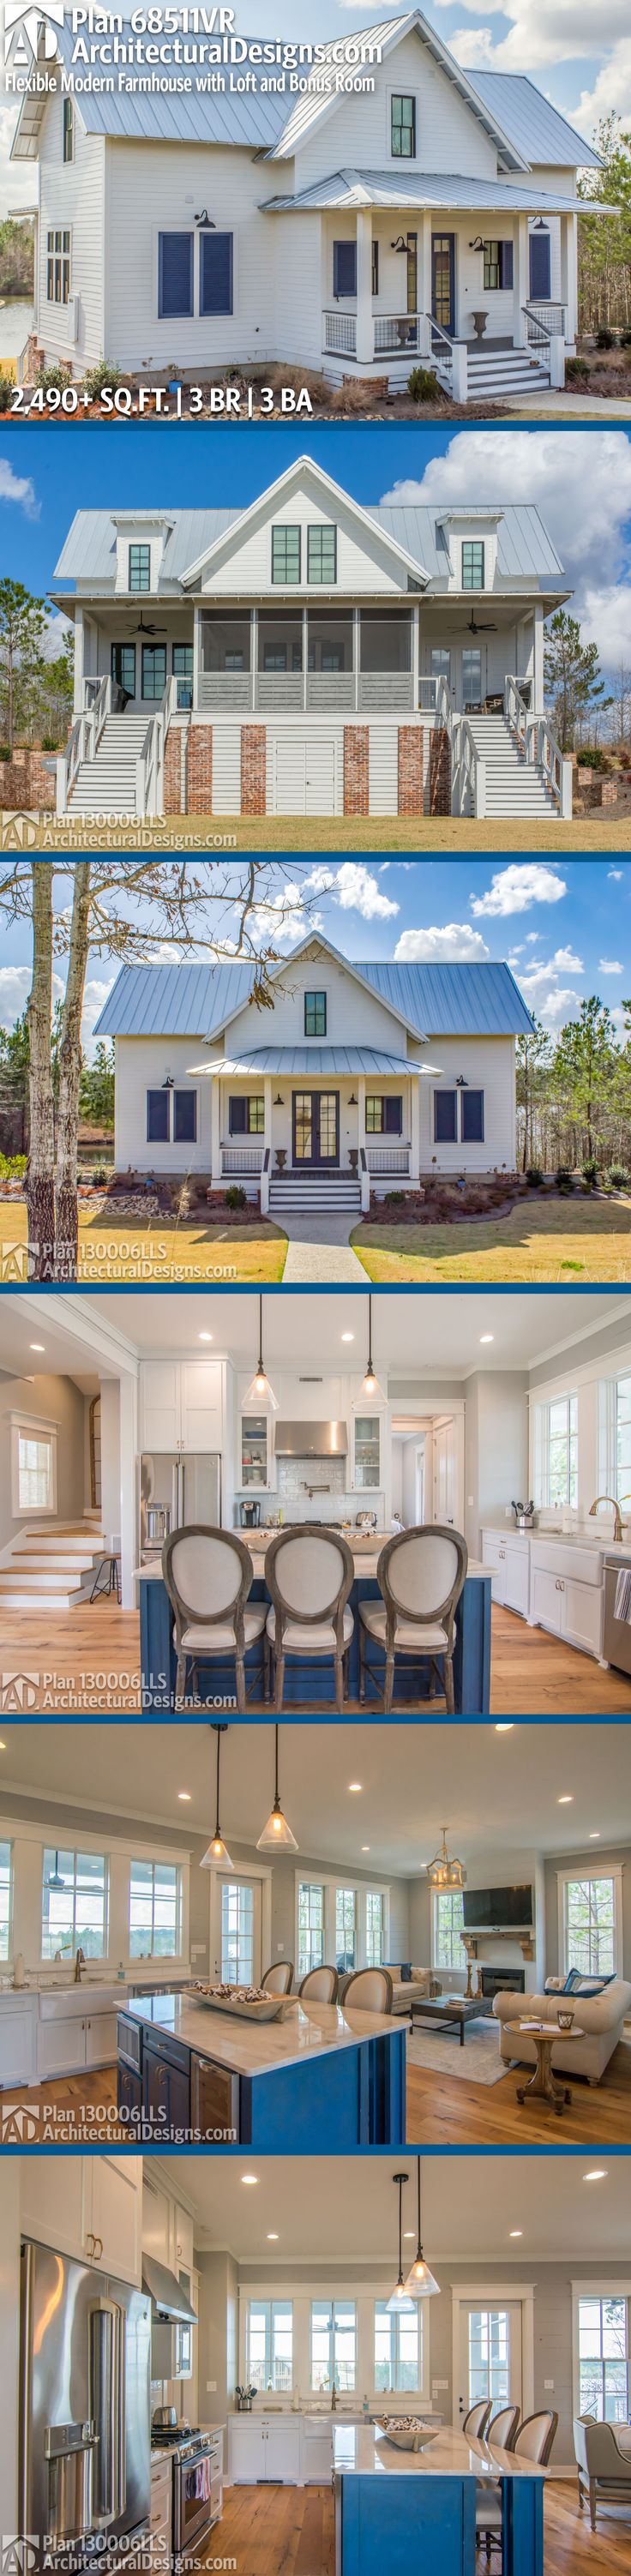 Architectural Designs Modern Farmhouse House Plan 130006LLS has 3 beds | 2.5 baths | 1,500+ square feet of heated living space. Kitchen layout